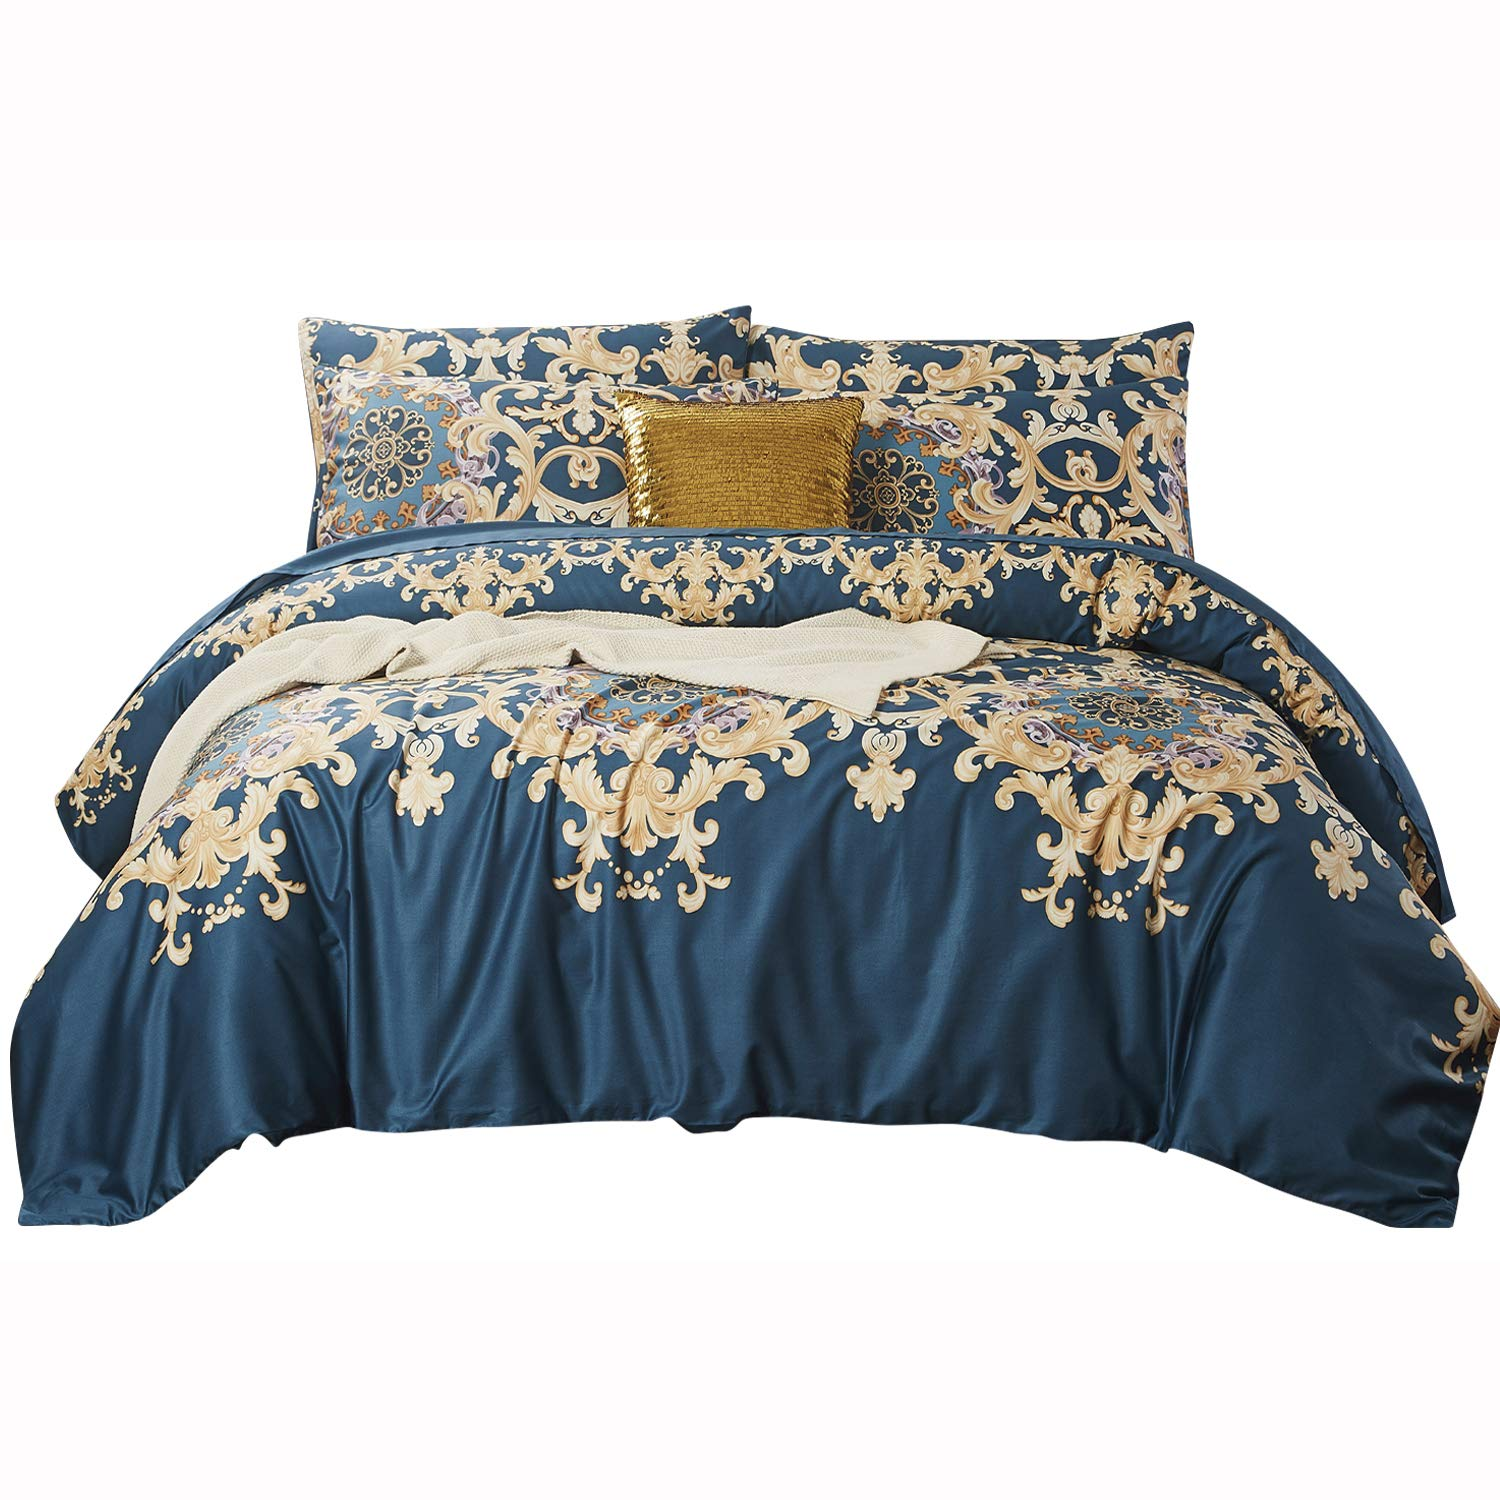 Softta Teal Bedding Vintage Damask Floral California King 3 Pcs Blue and Gold Duvet Cover Boho Turquoise 100% Egyptian Cotton 1000 Thread Count Hypoallergenic Navy Blue